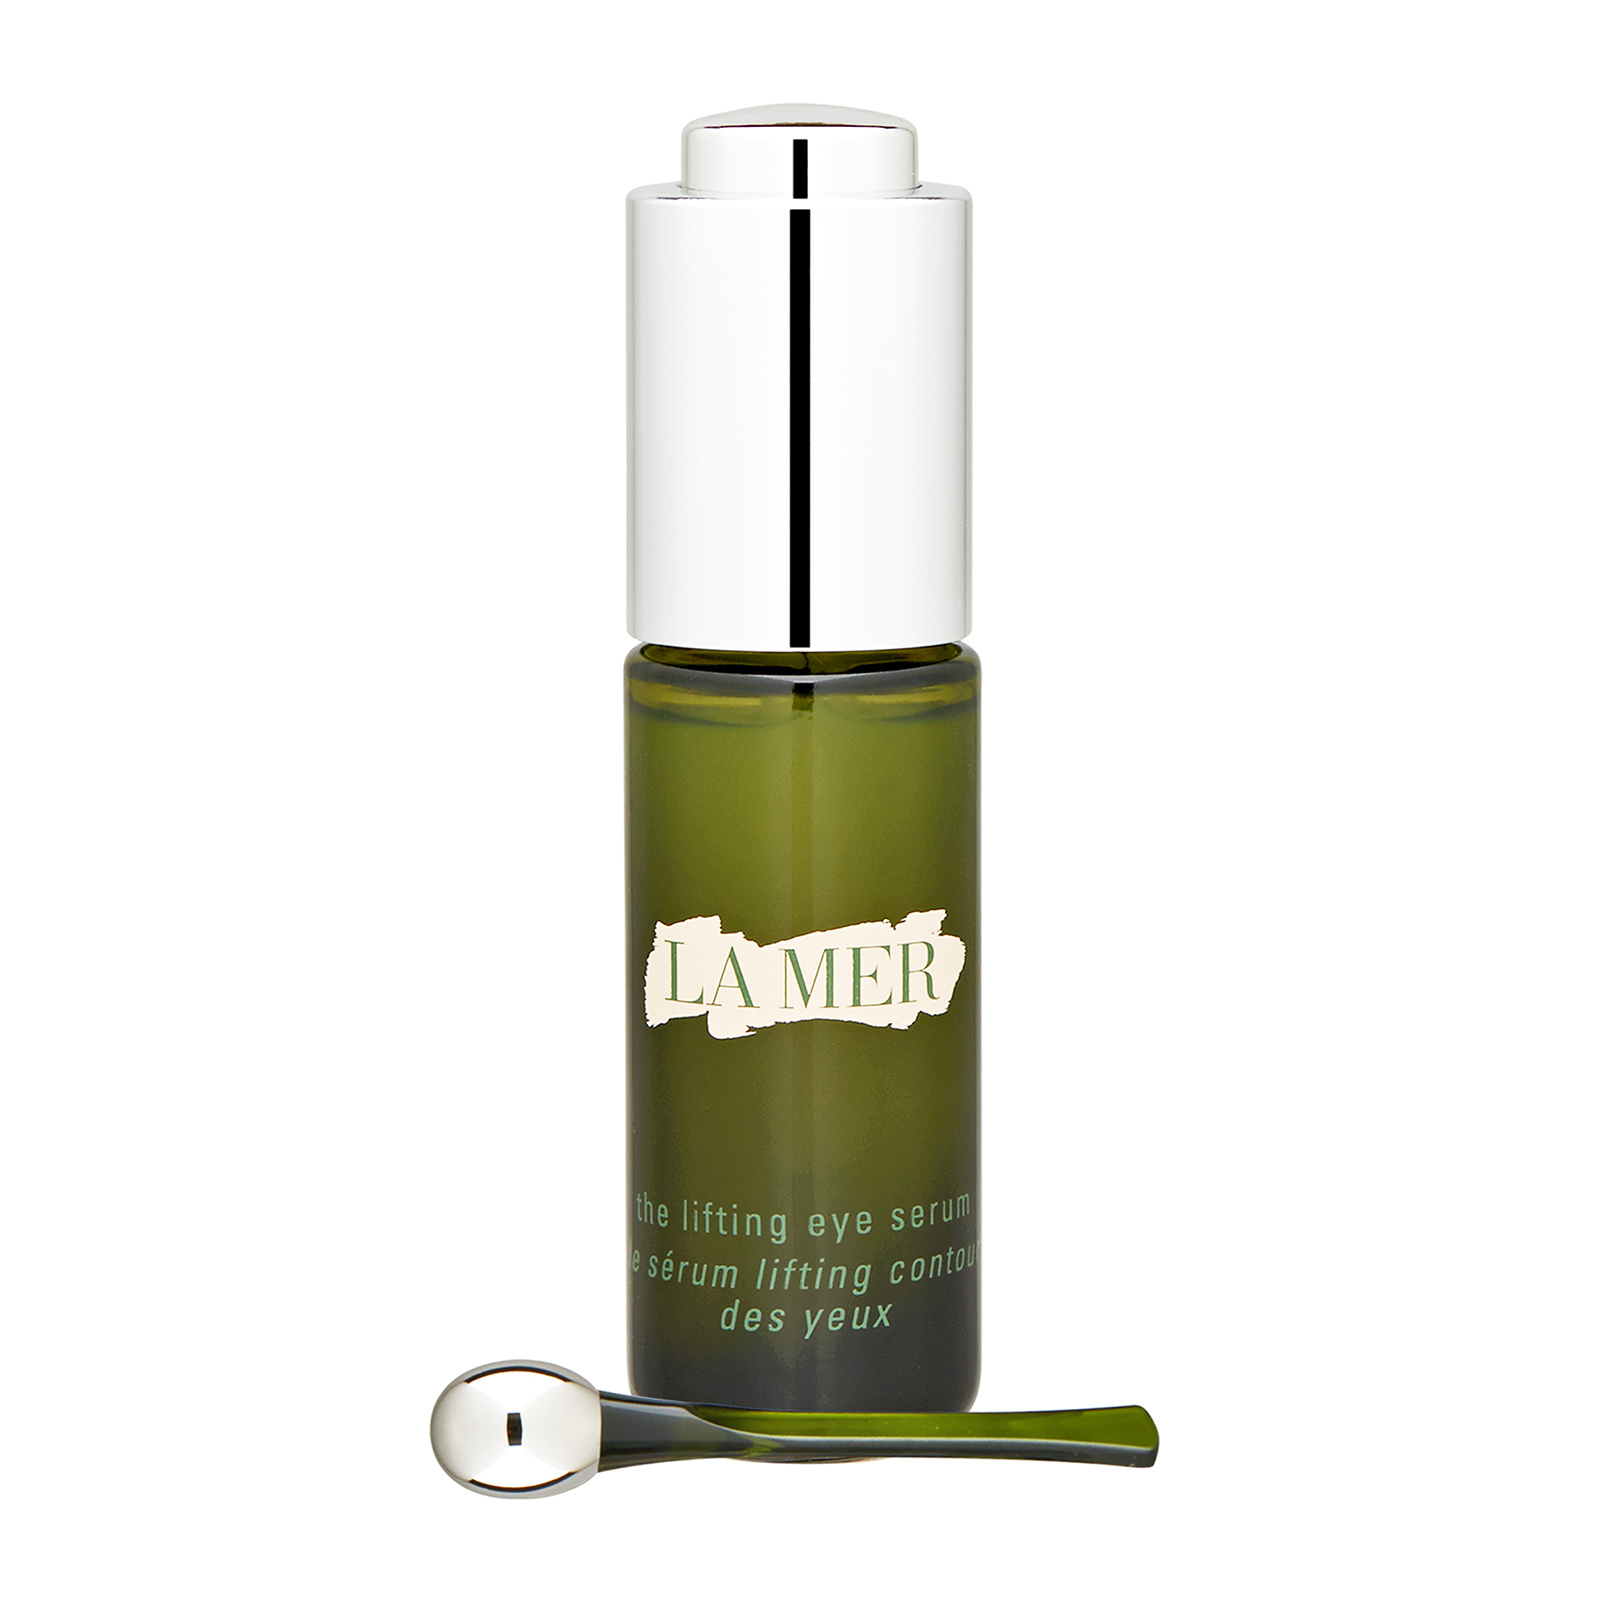 La Mer The Lifting Eye Serum 0.5oz, 15ml